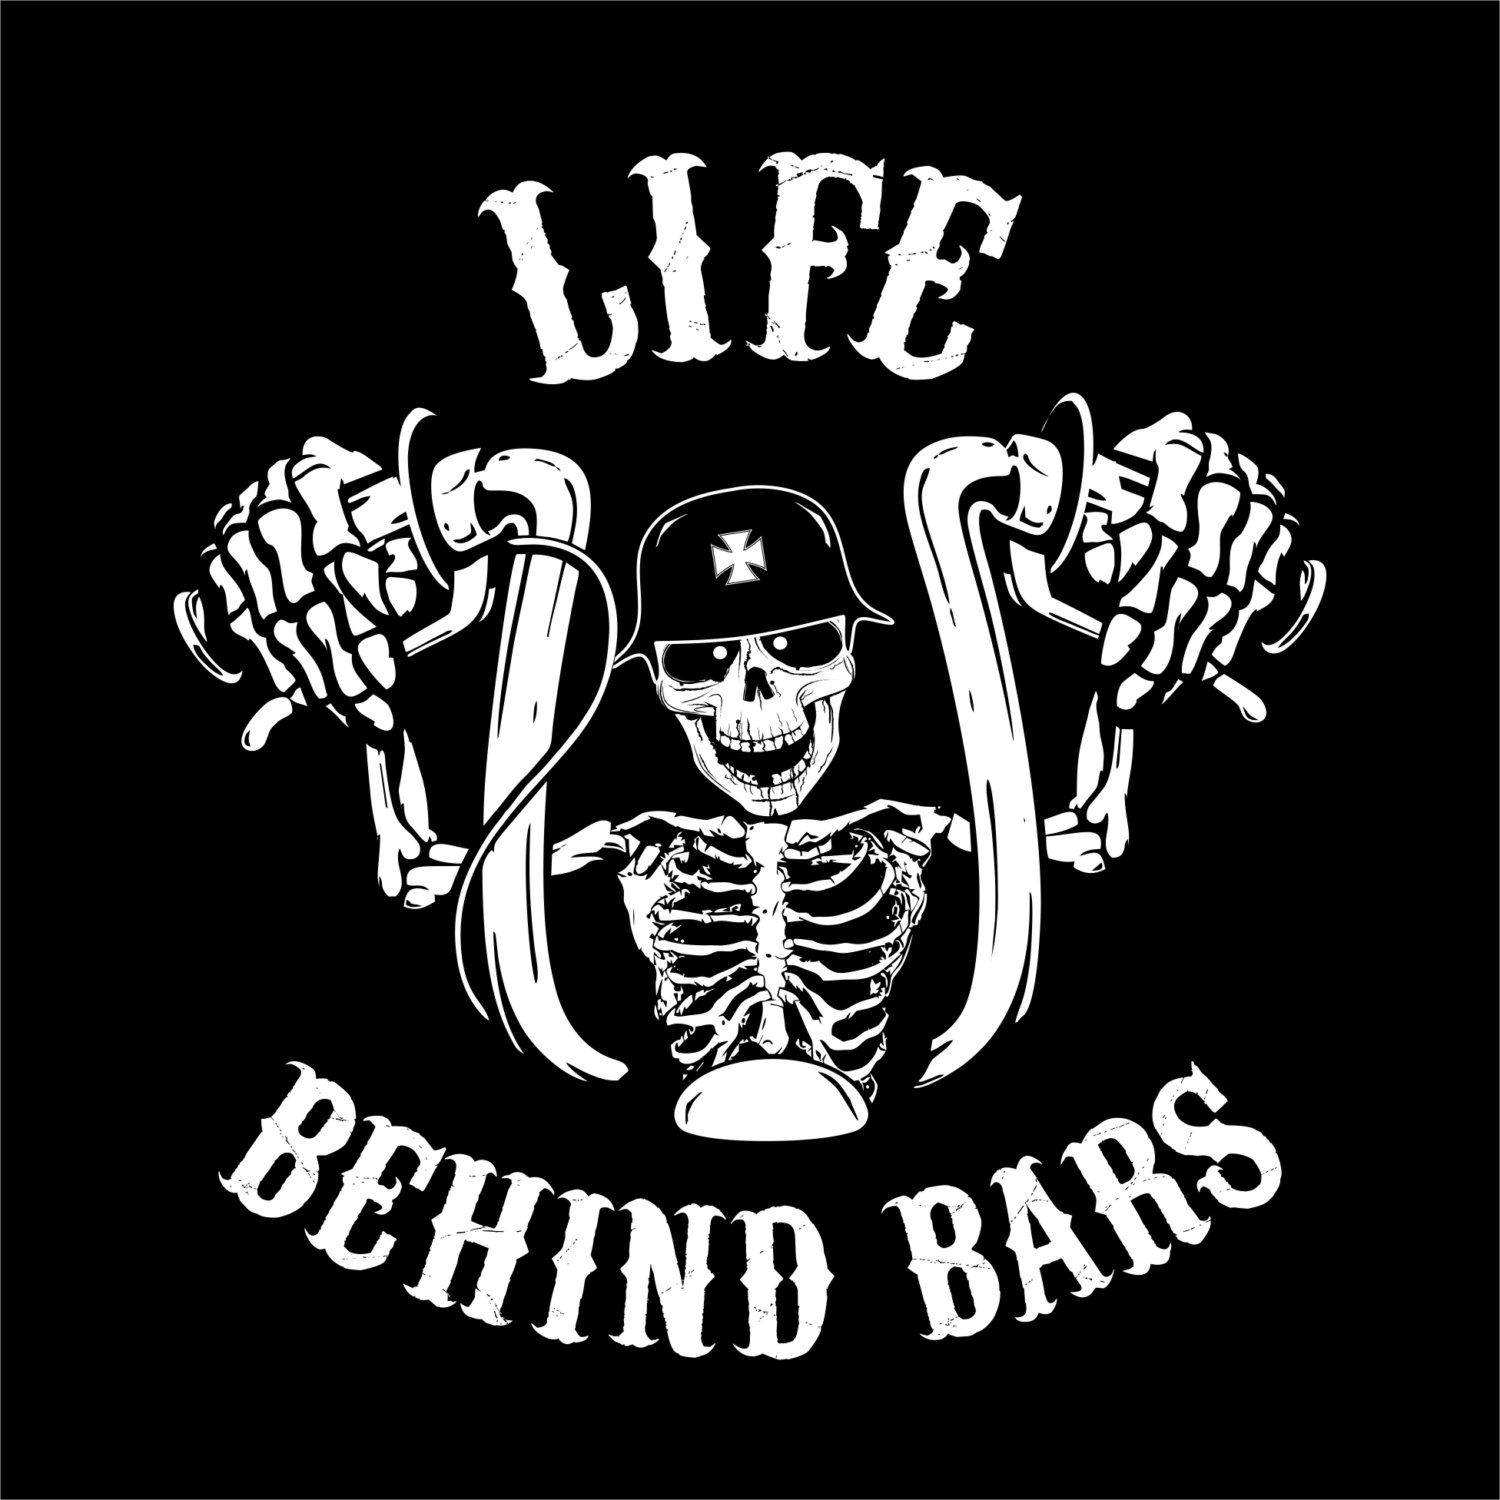 Life Behind Bars - Biker Shirt - The Original - Biker Shirt ...